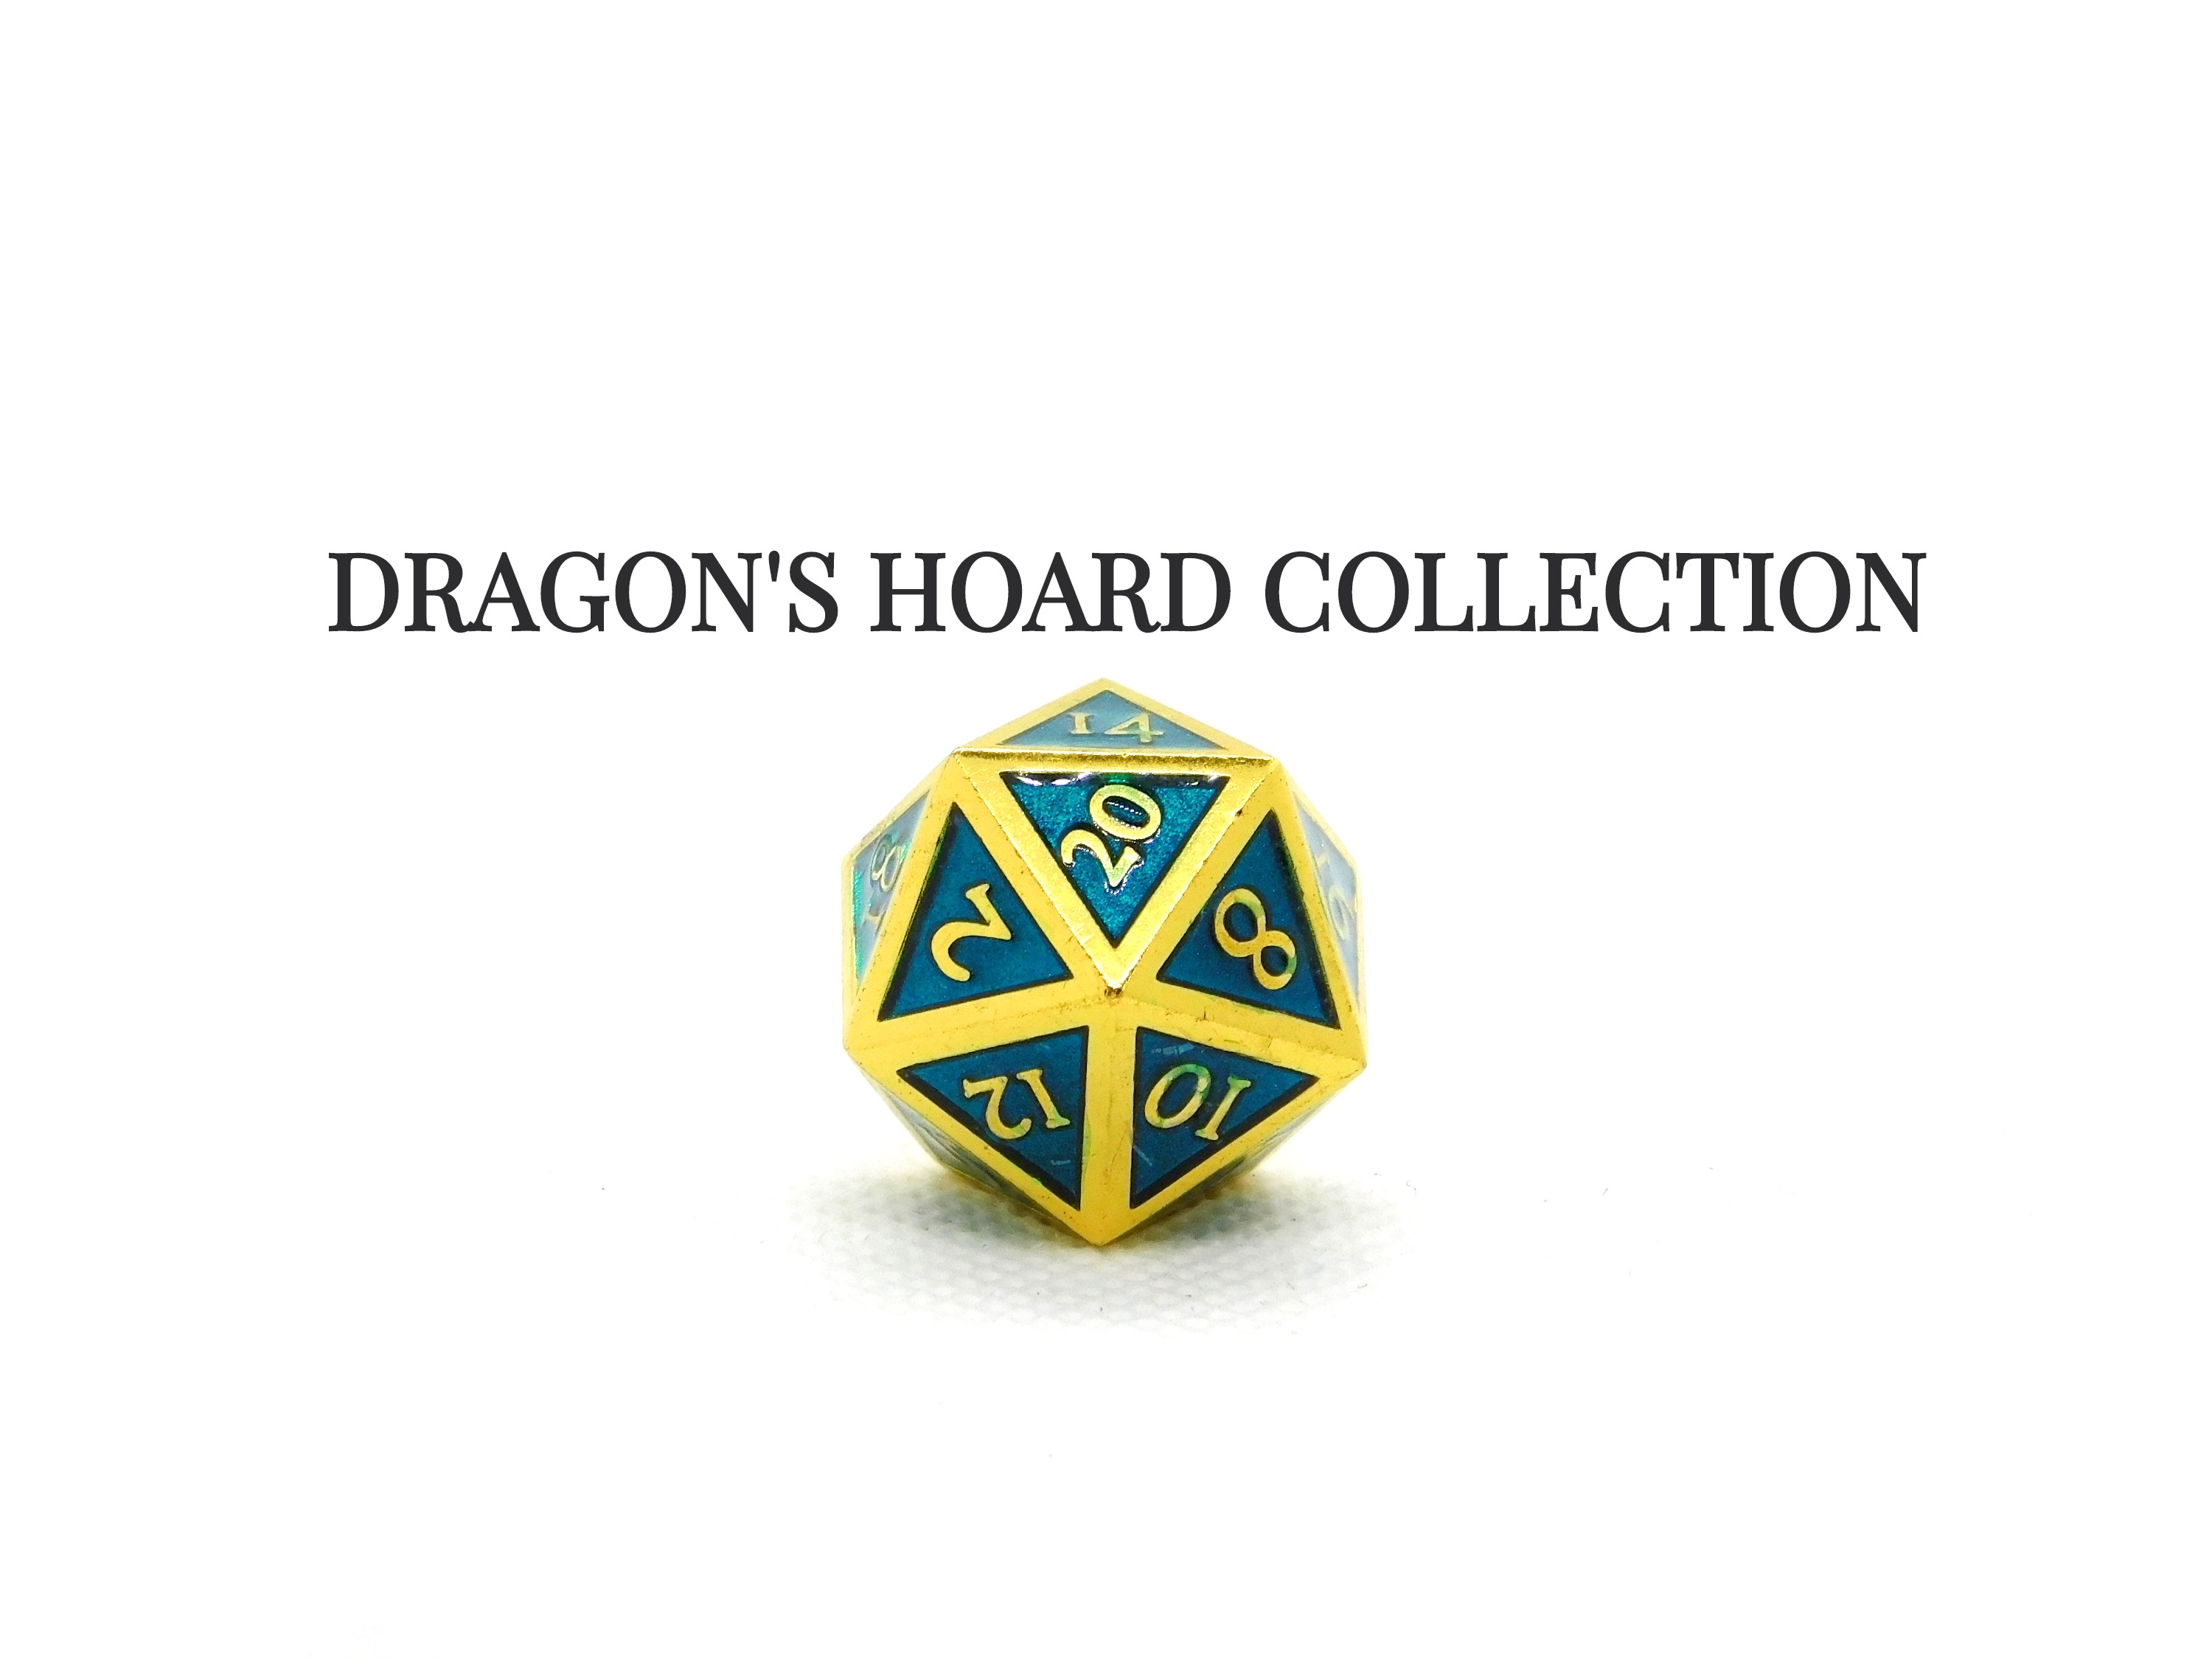 Dragon's Hoard Collection